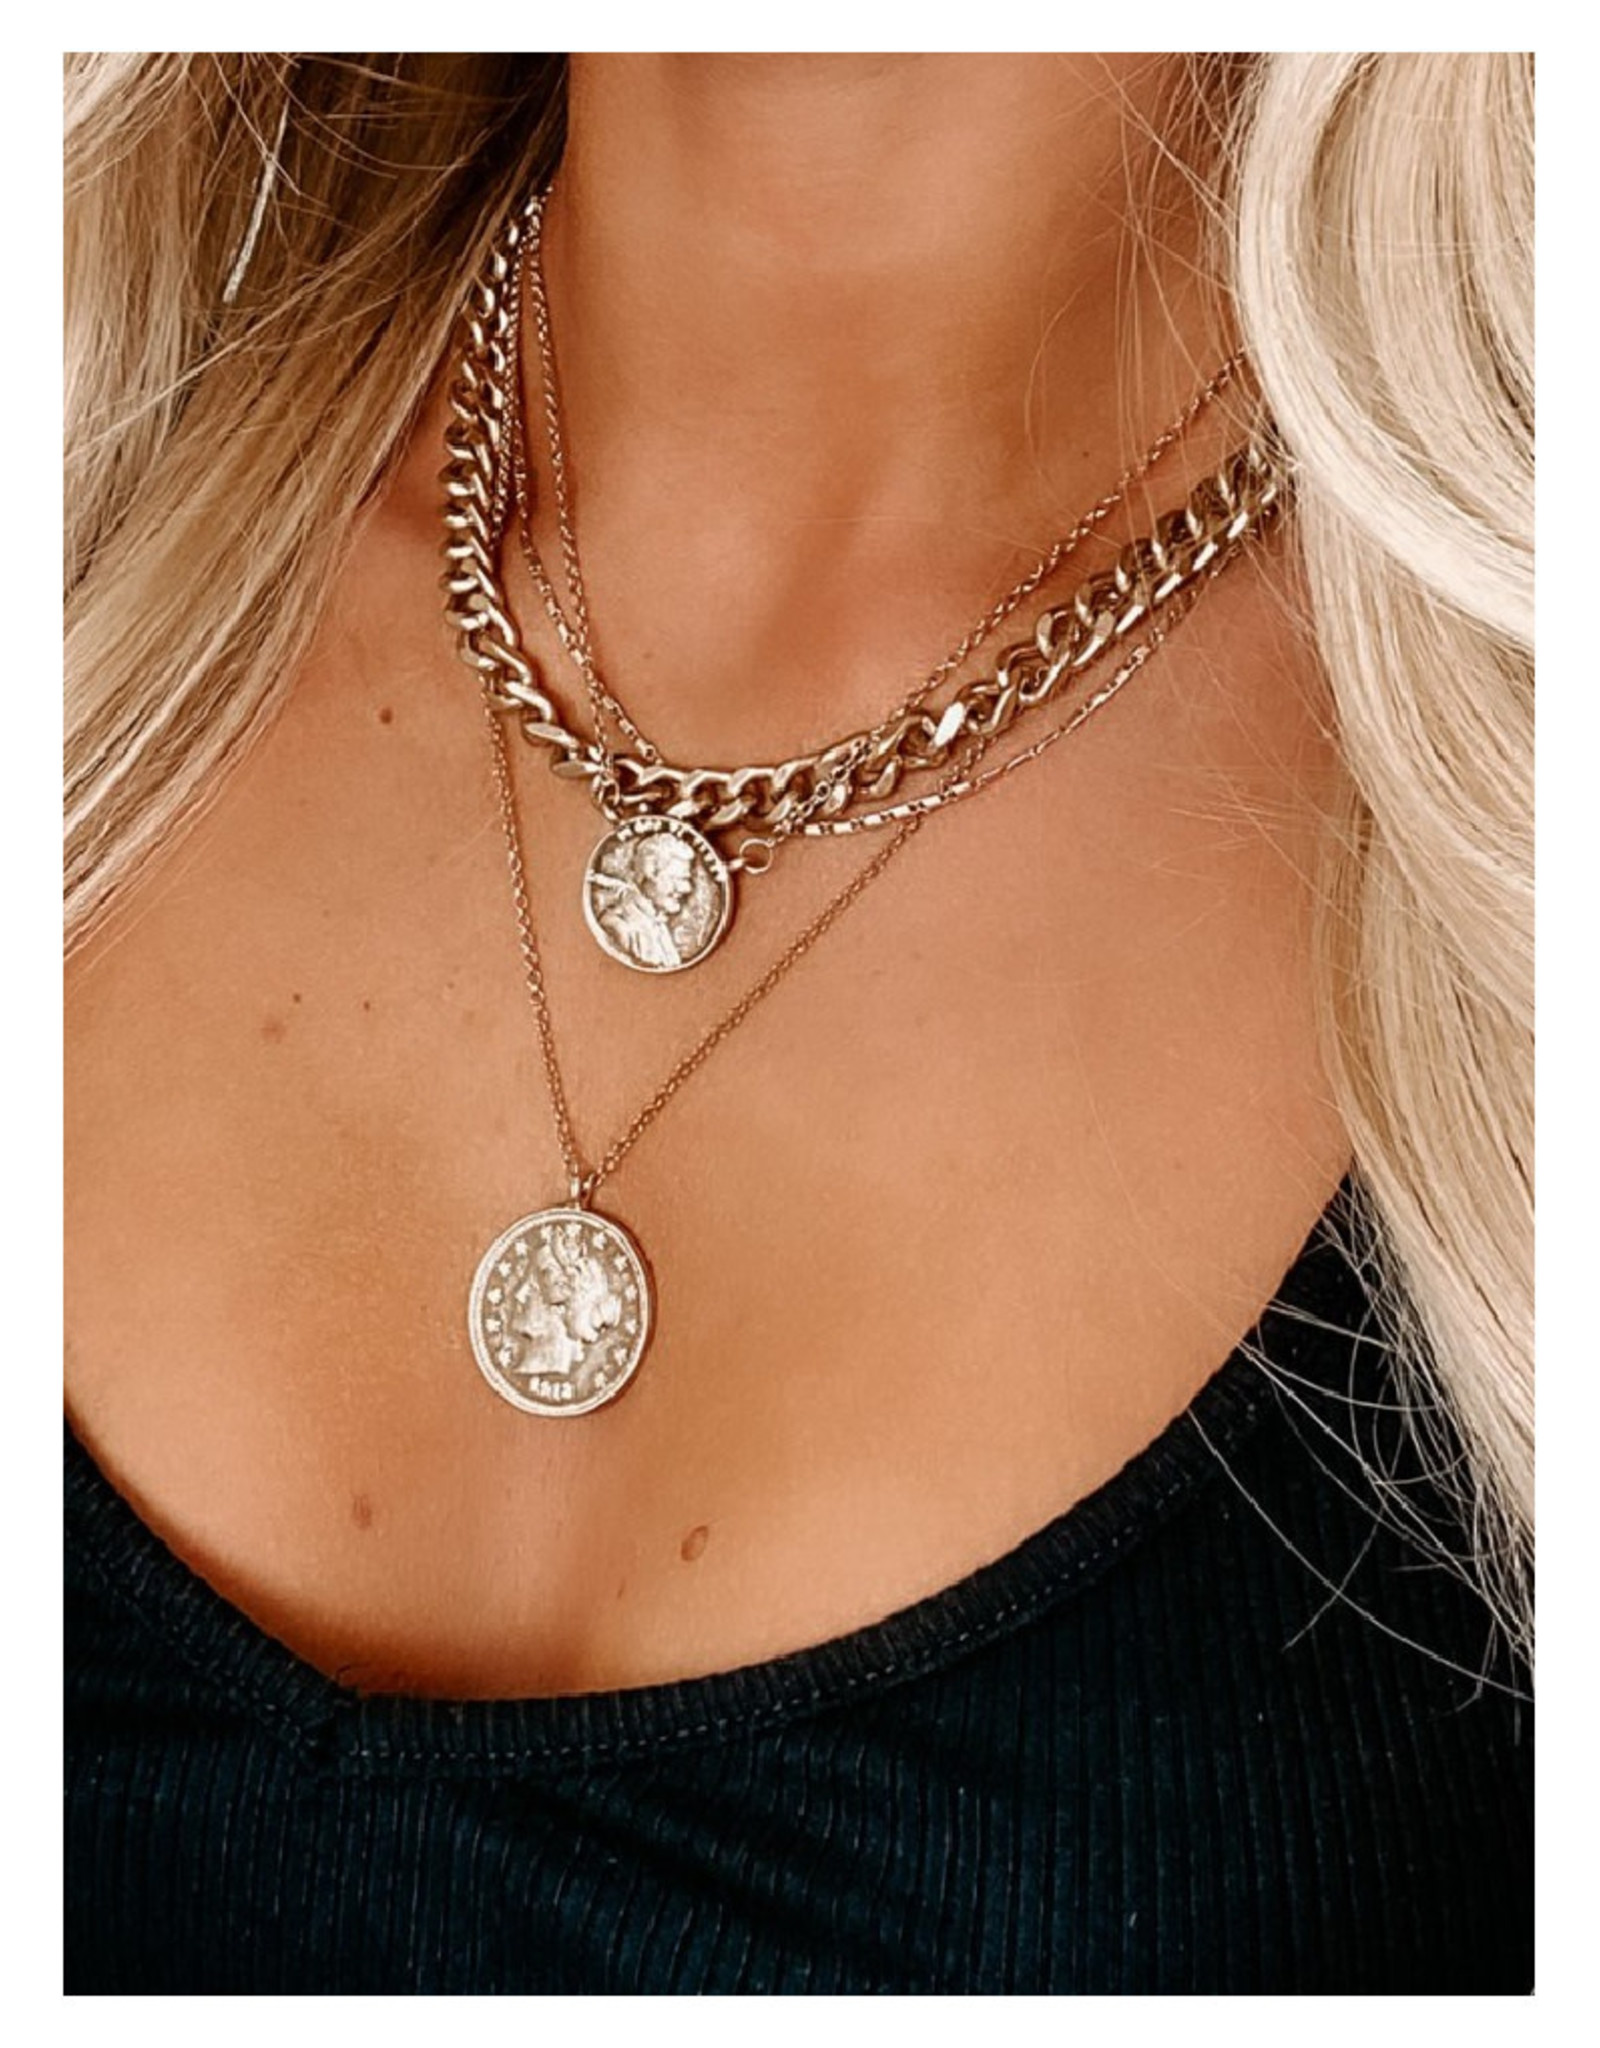 Layered Necklace with Coin Charms